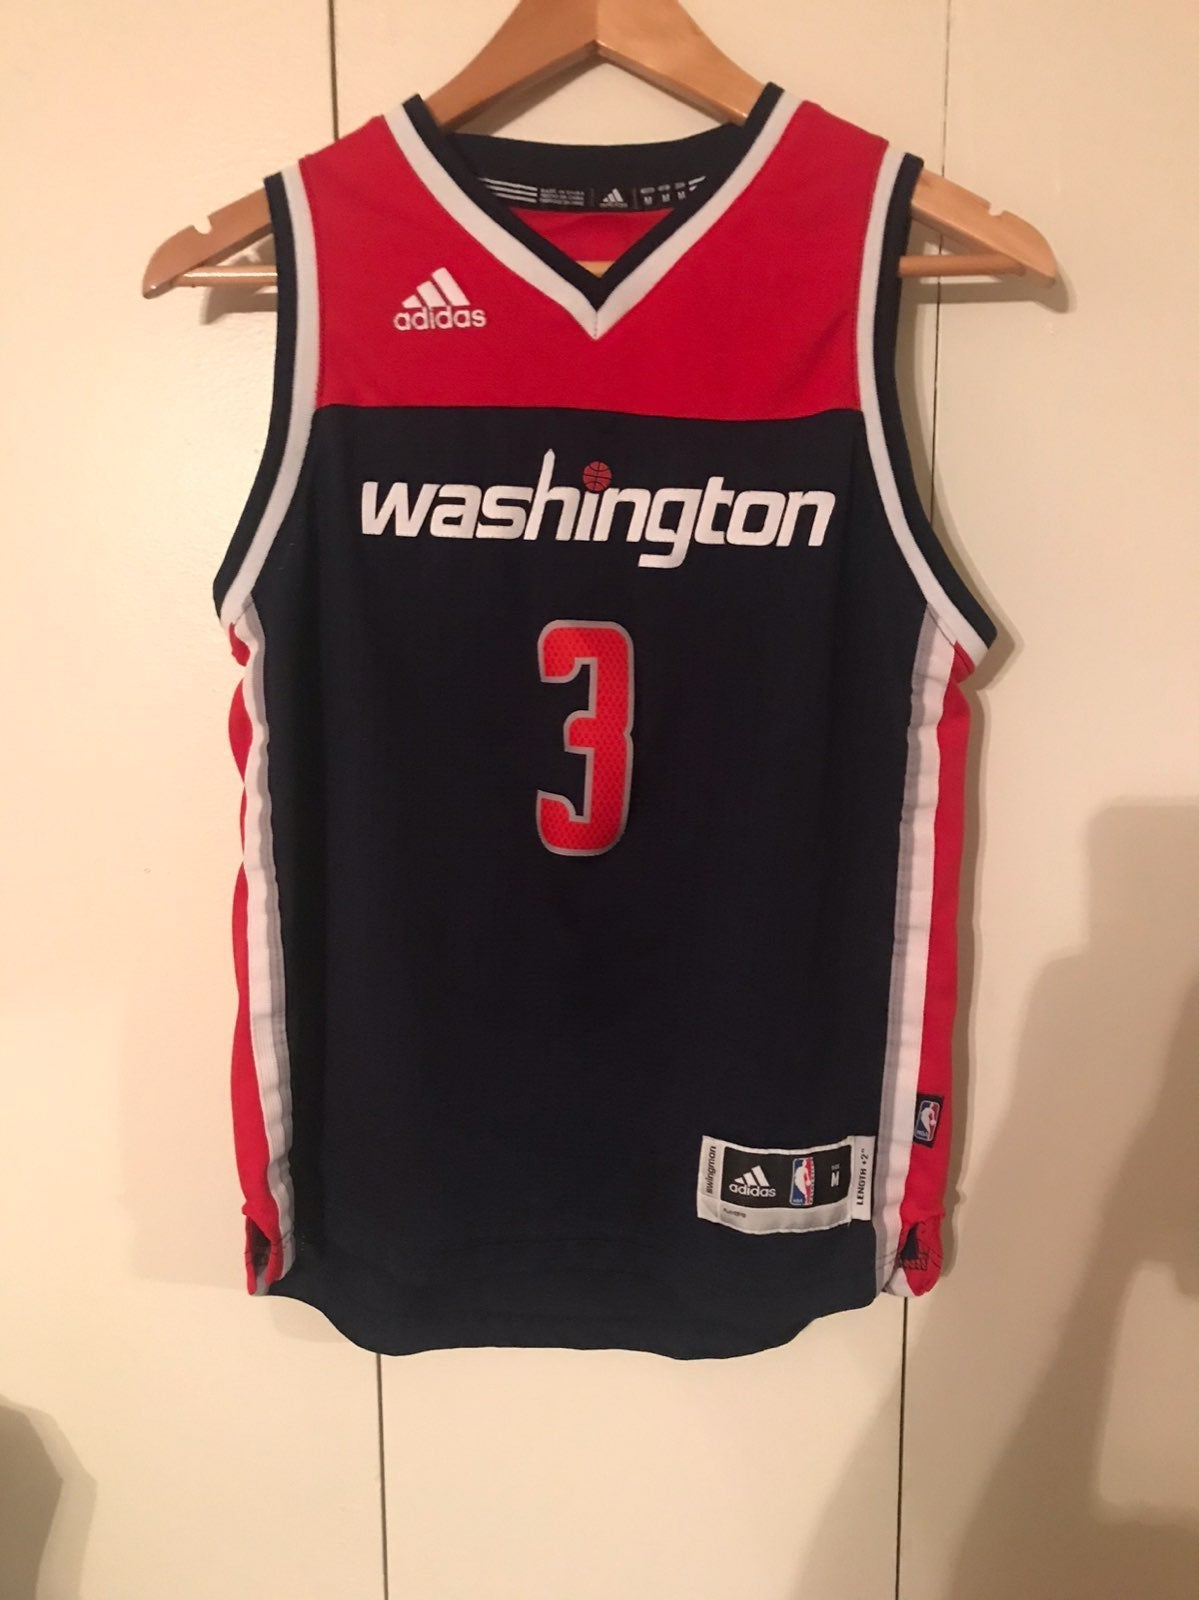 Adidas Washington Wizards Jersey